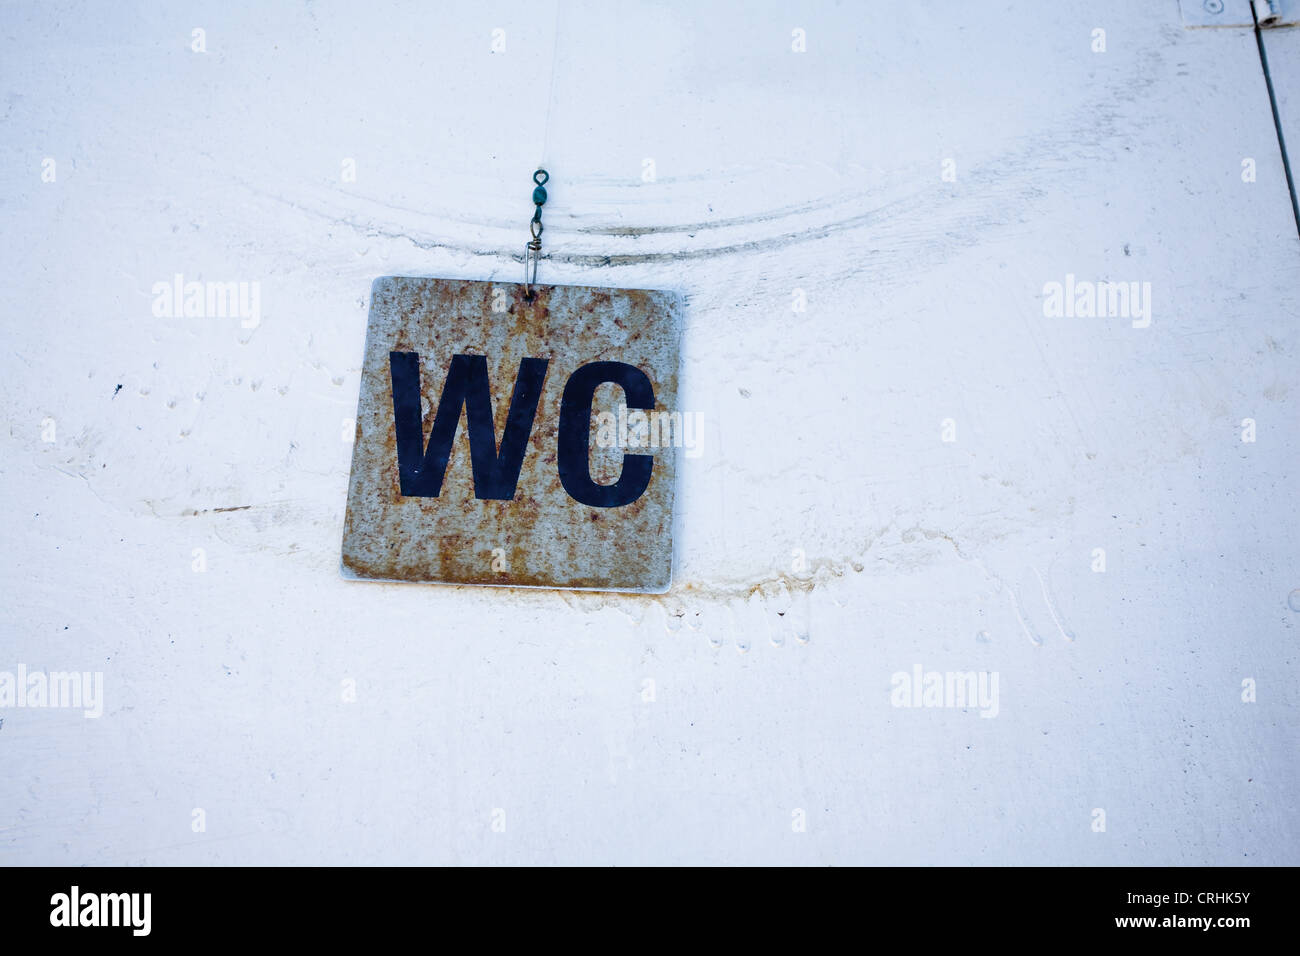 Restroom sign marked 'WC' - Stock Image